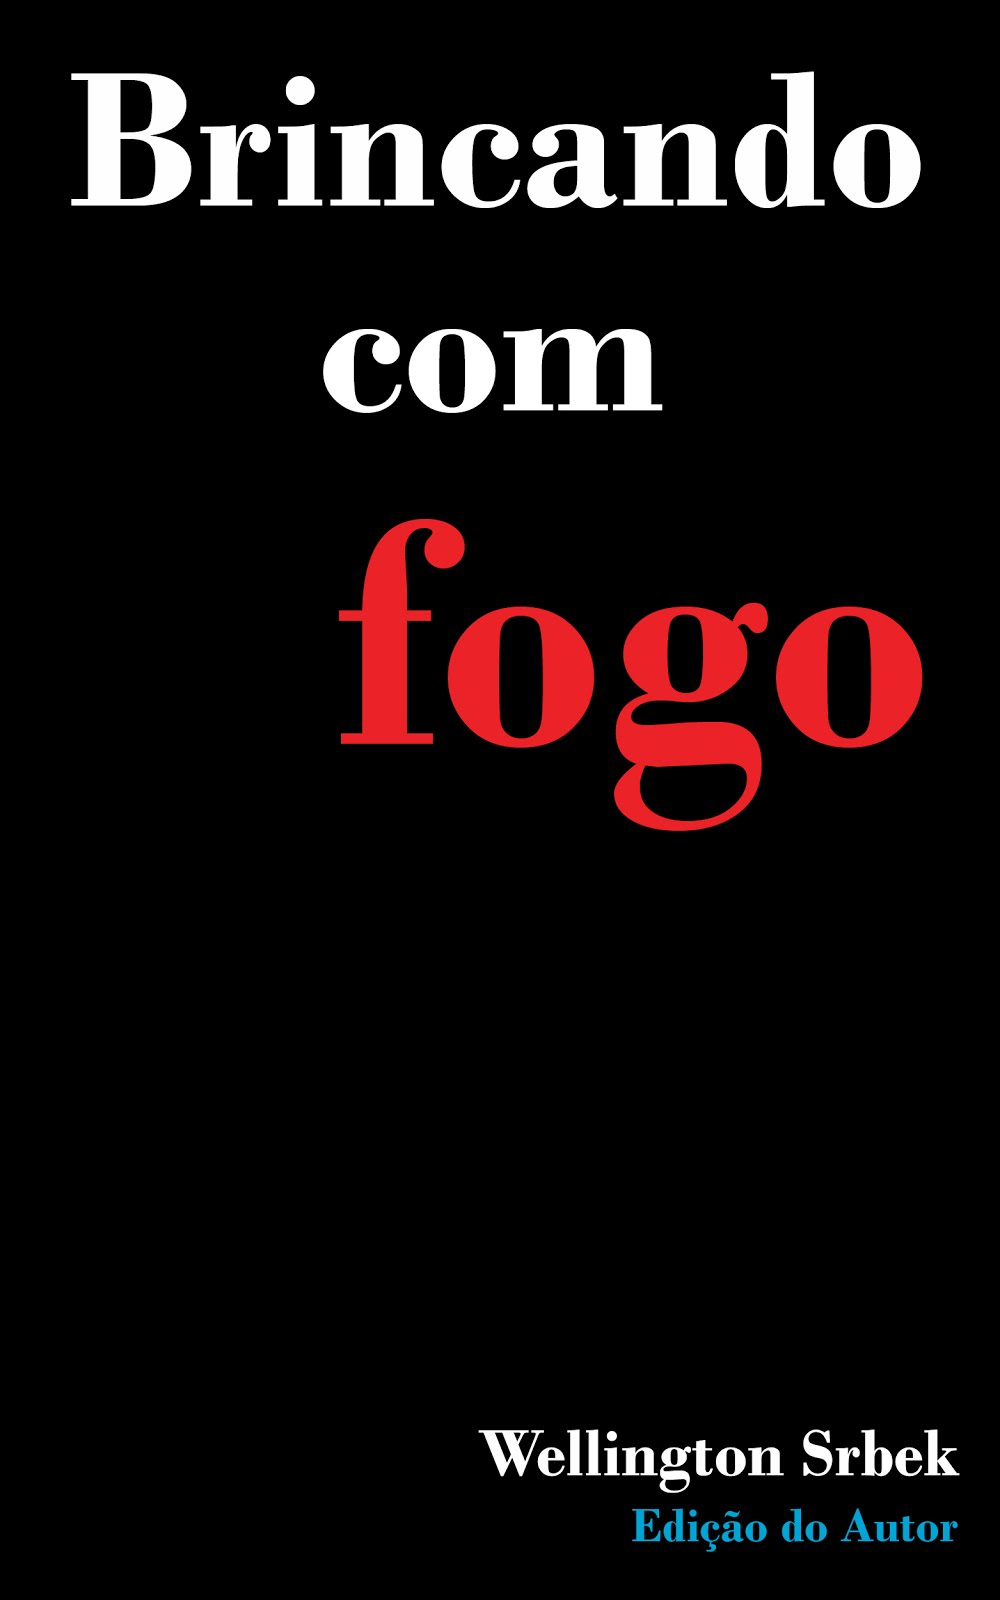 BRINCANDO COM FOGO